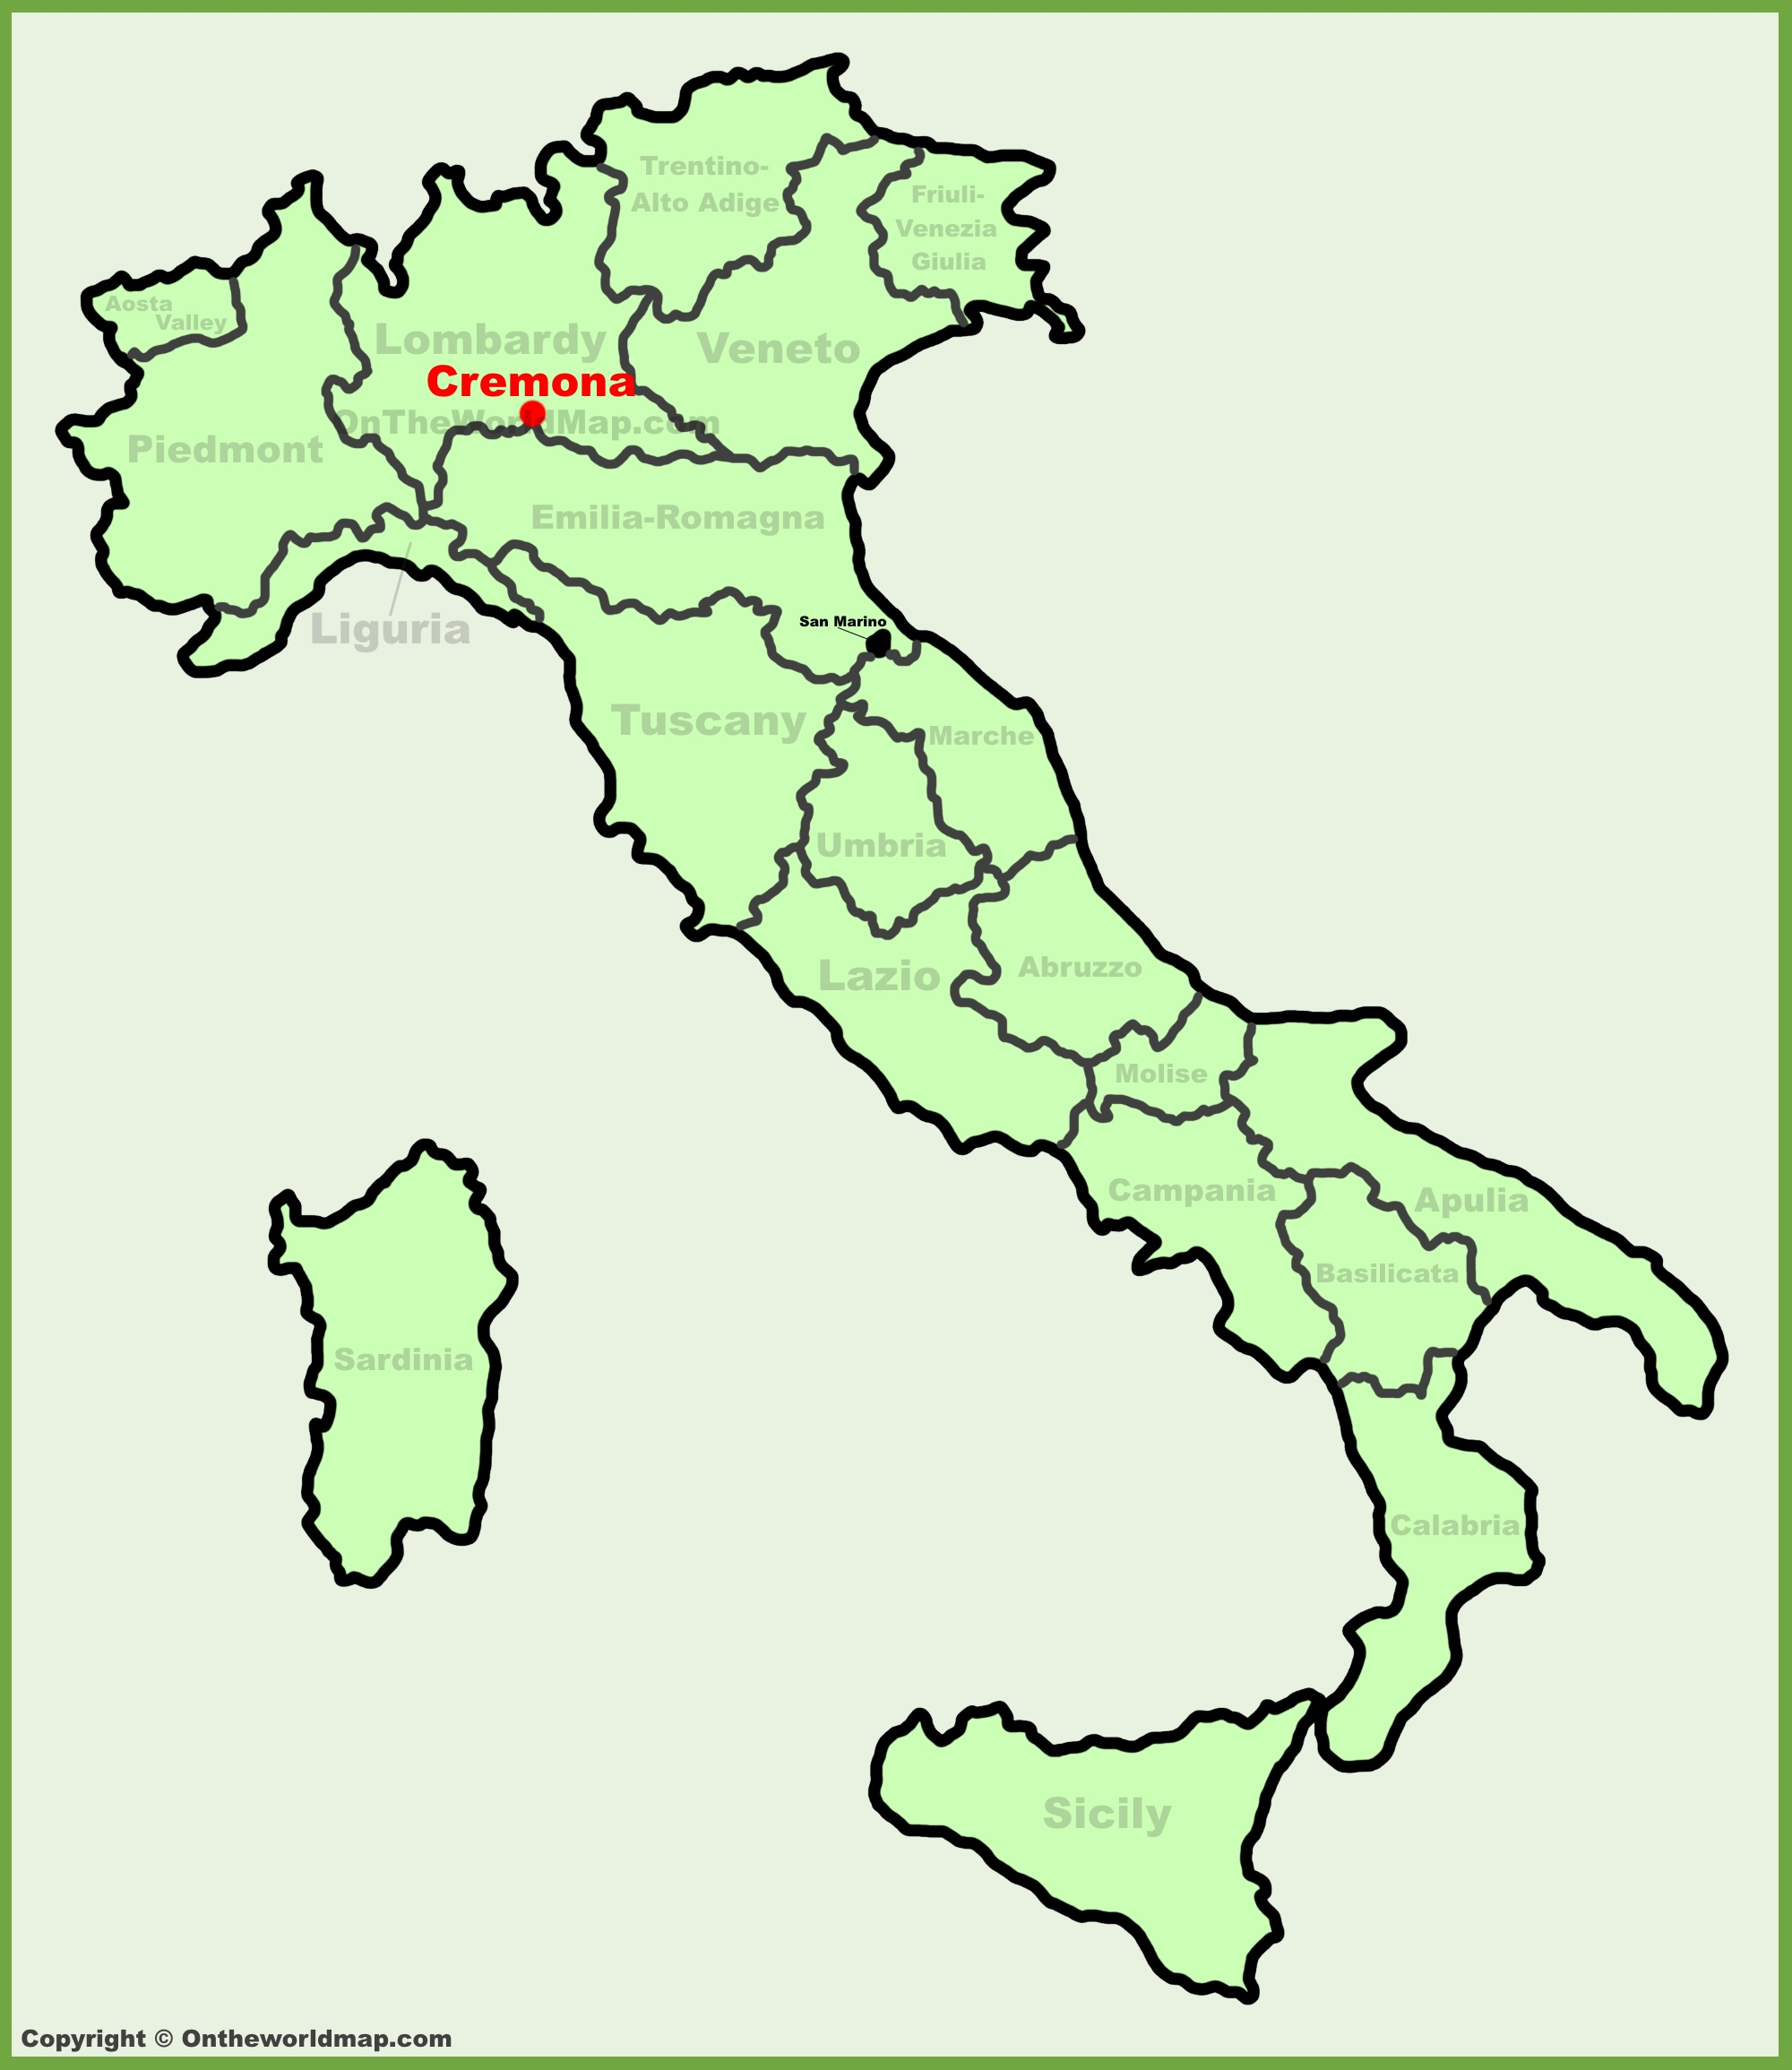 Cremona location on the Italy map